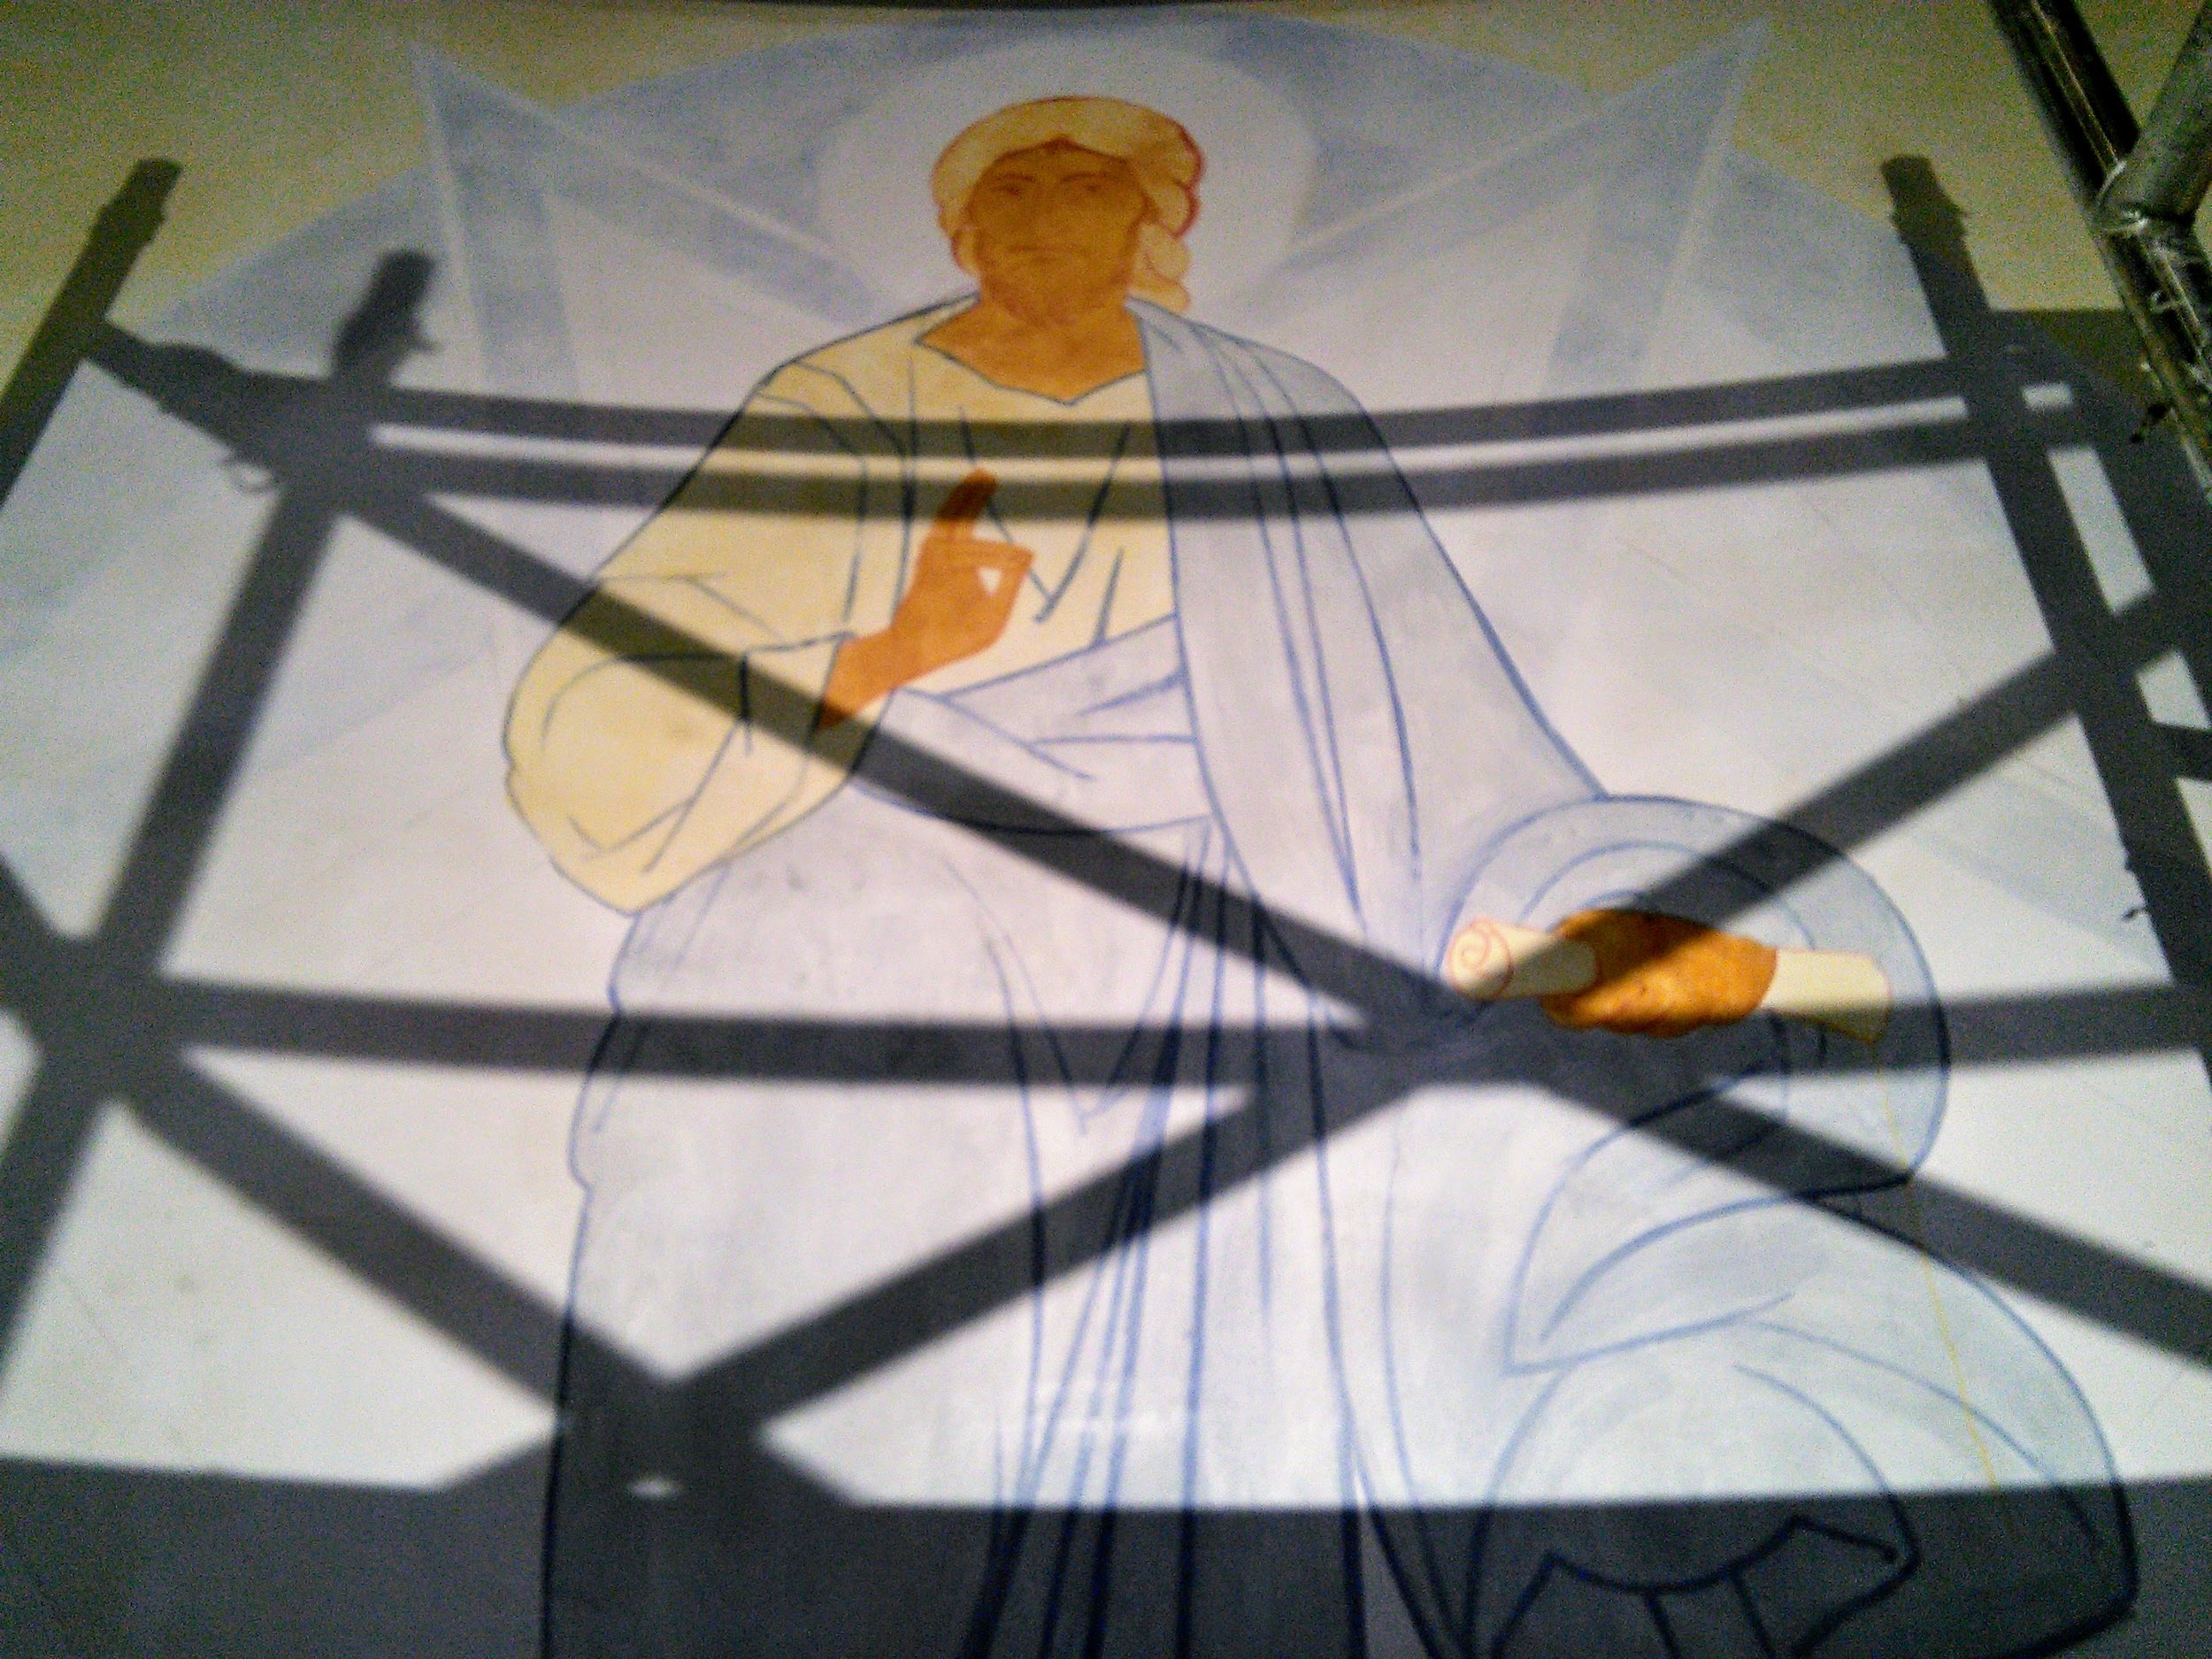 Christ, in the early stages of his Transfiguration! The first coats of paint applied.